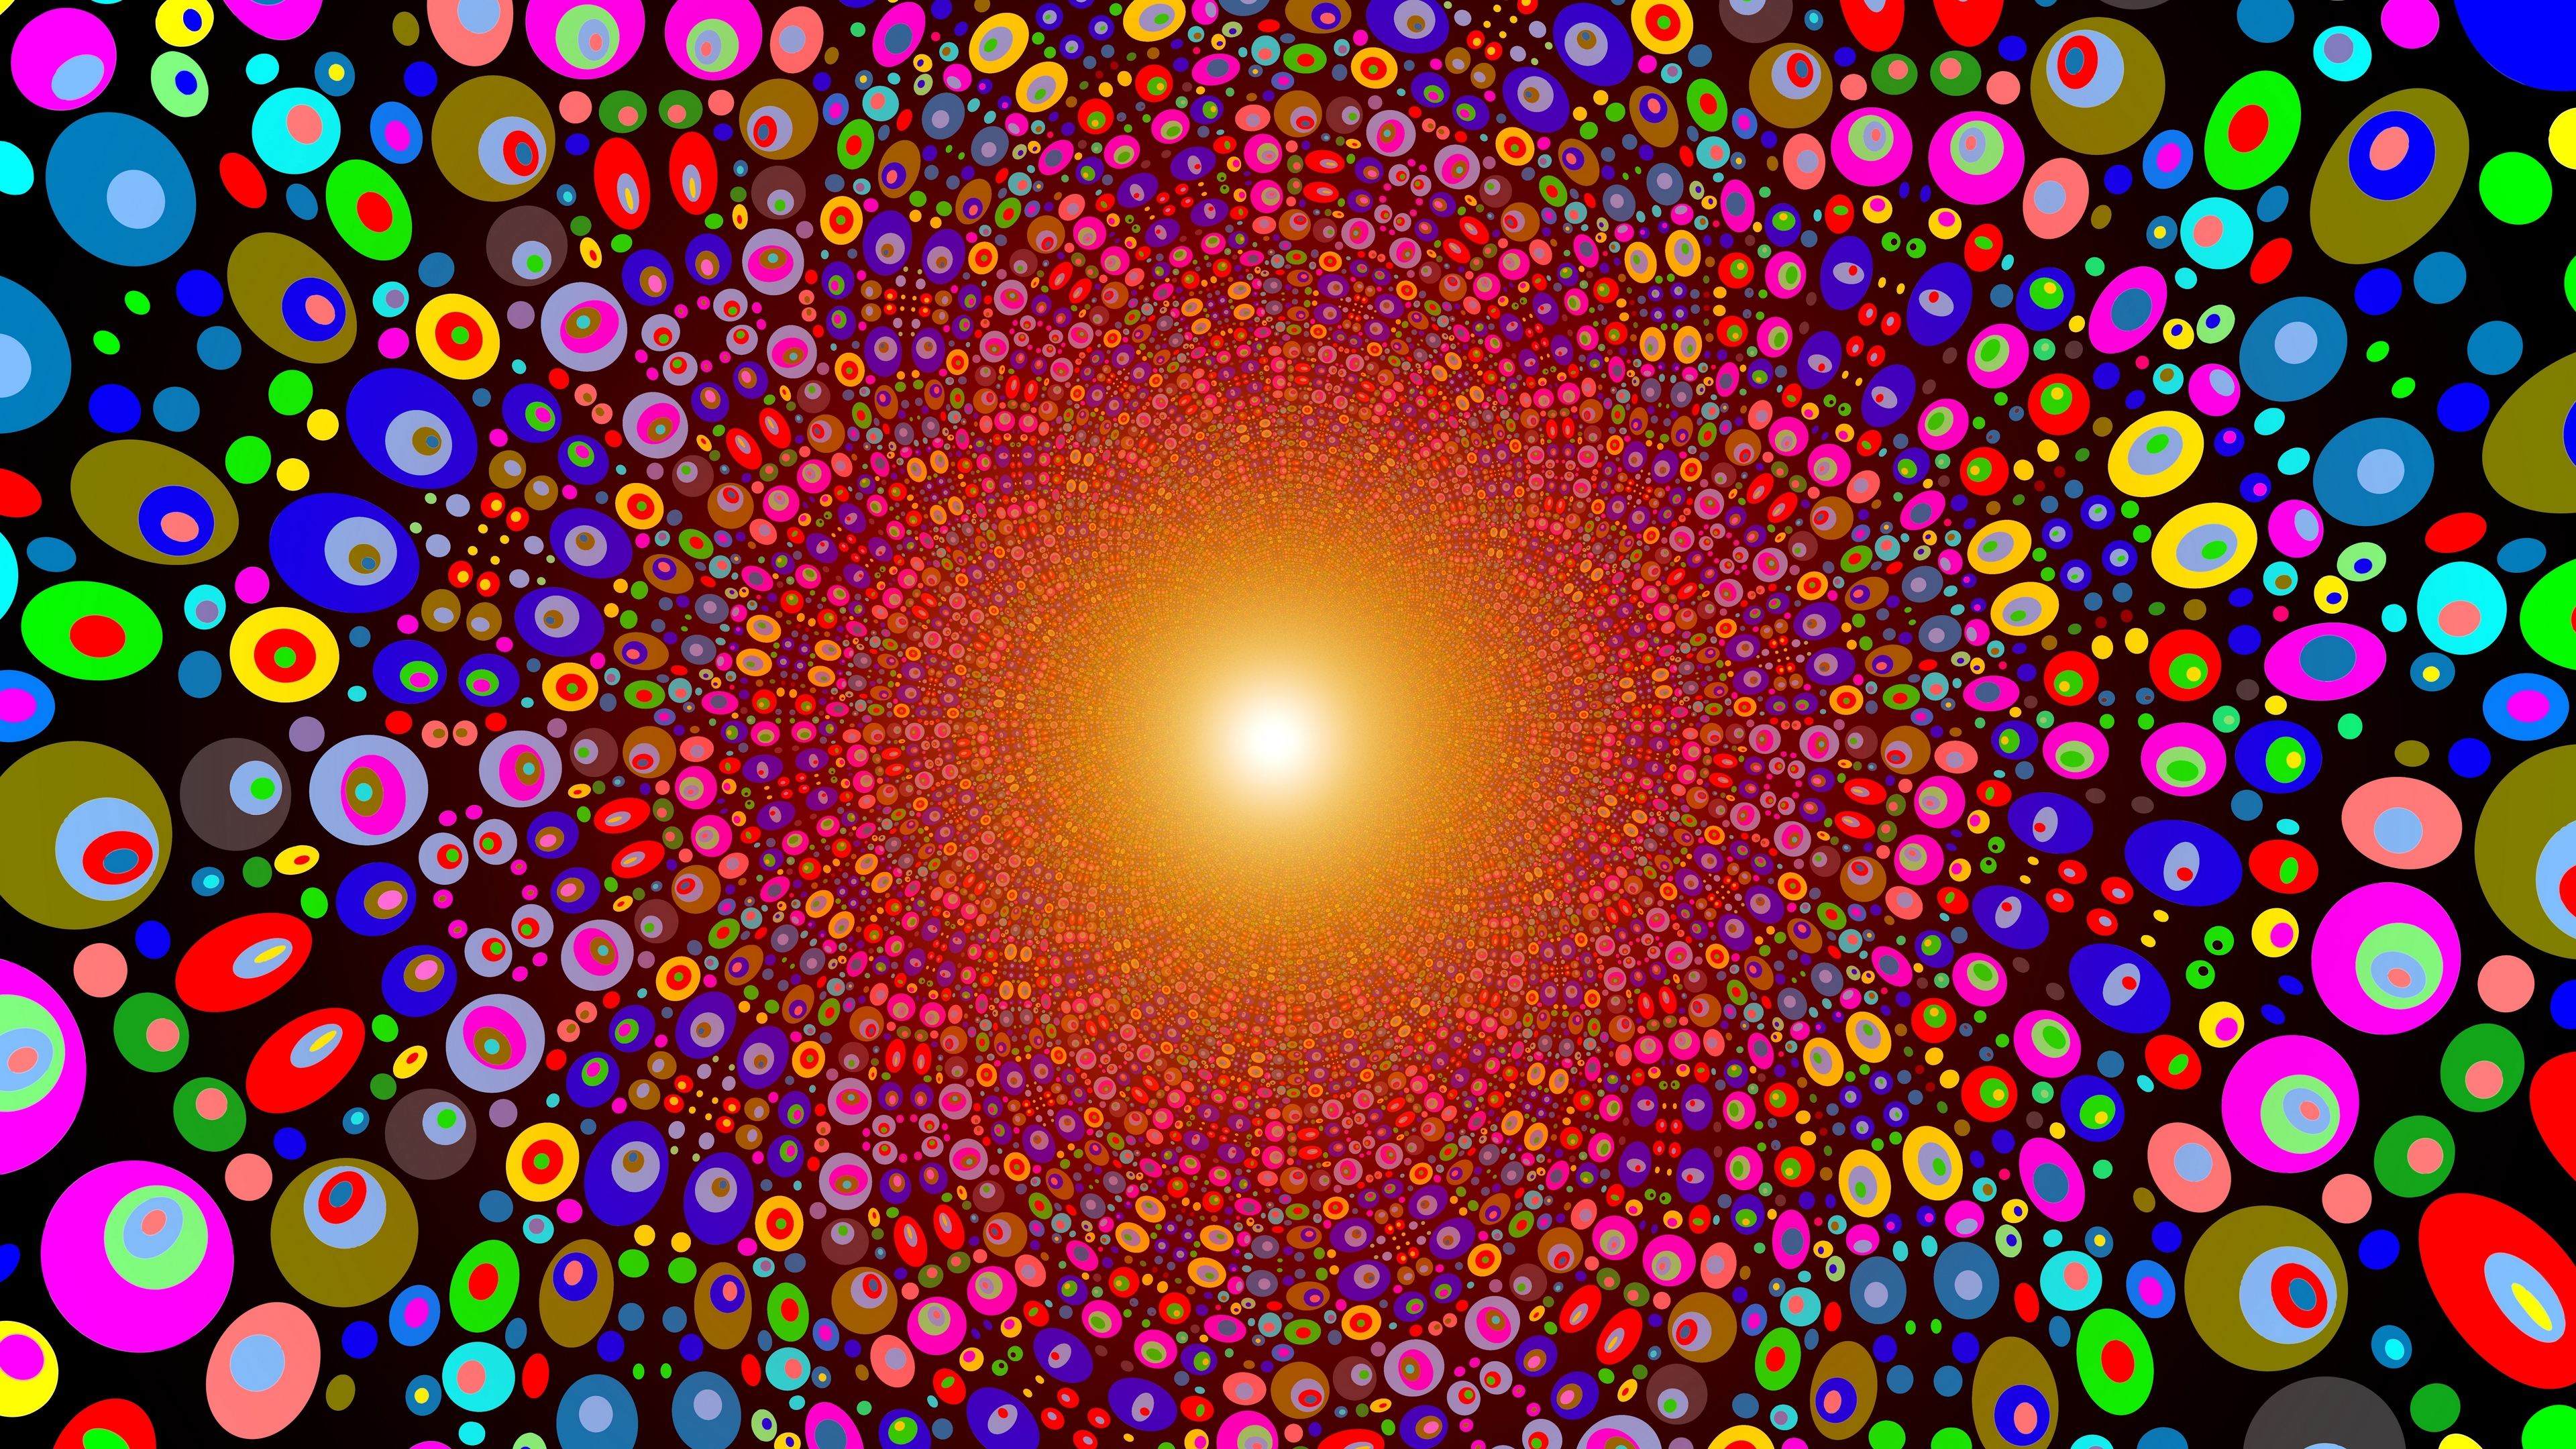 colorful bright circles texture line explosion 4k 1539369746 - colorful, bright, circles, texture, line, explosion 4k - Colorful, Circles, Bright